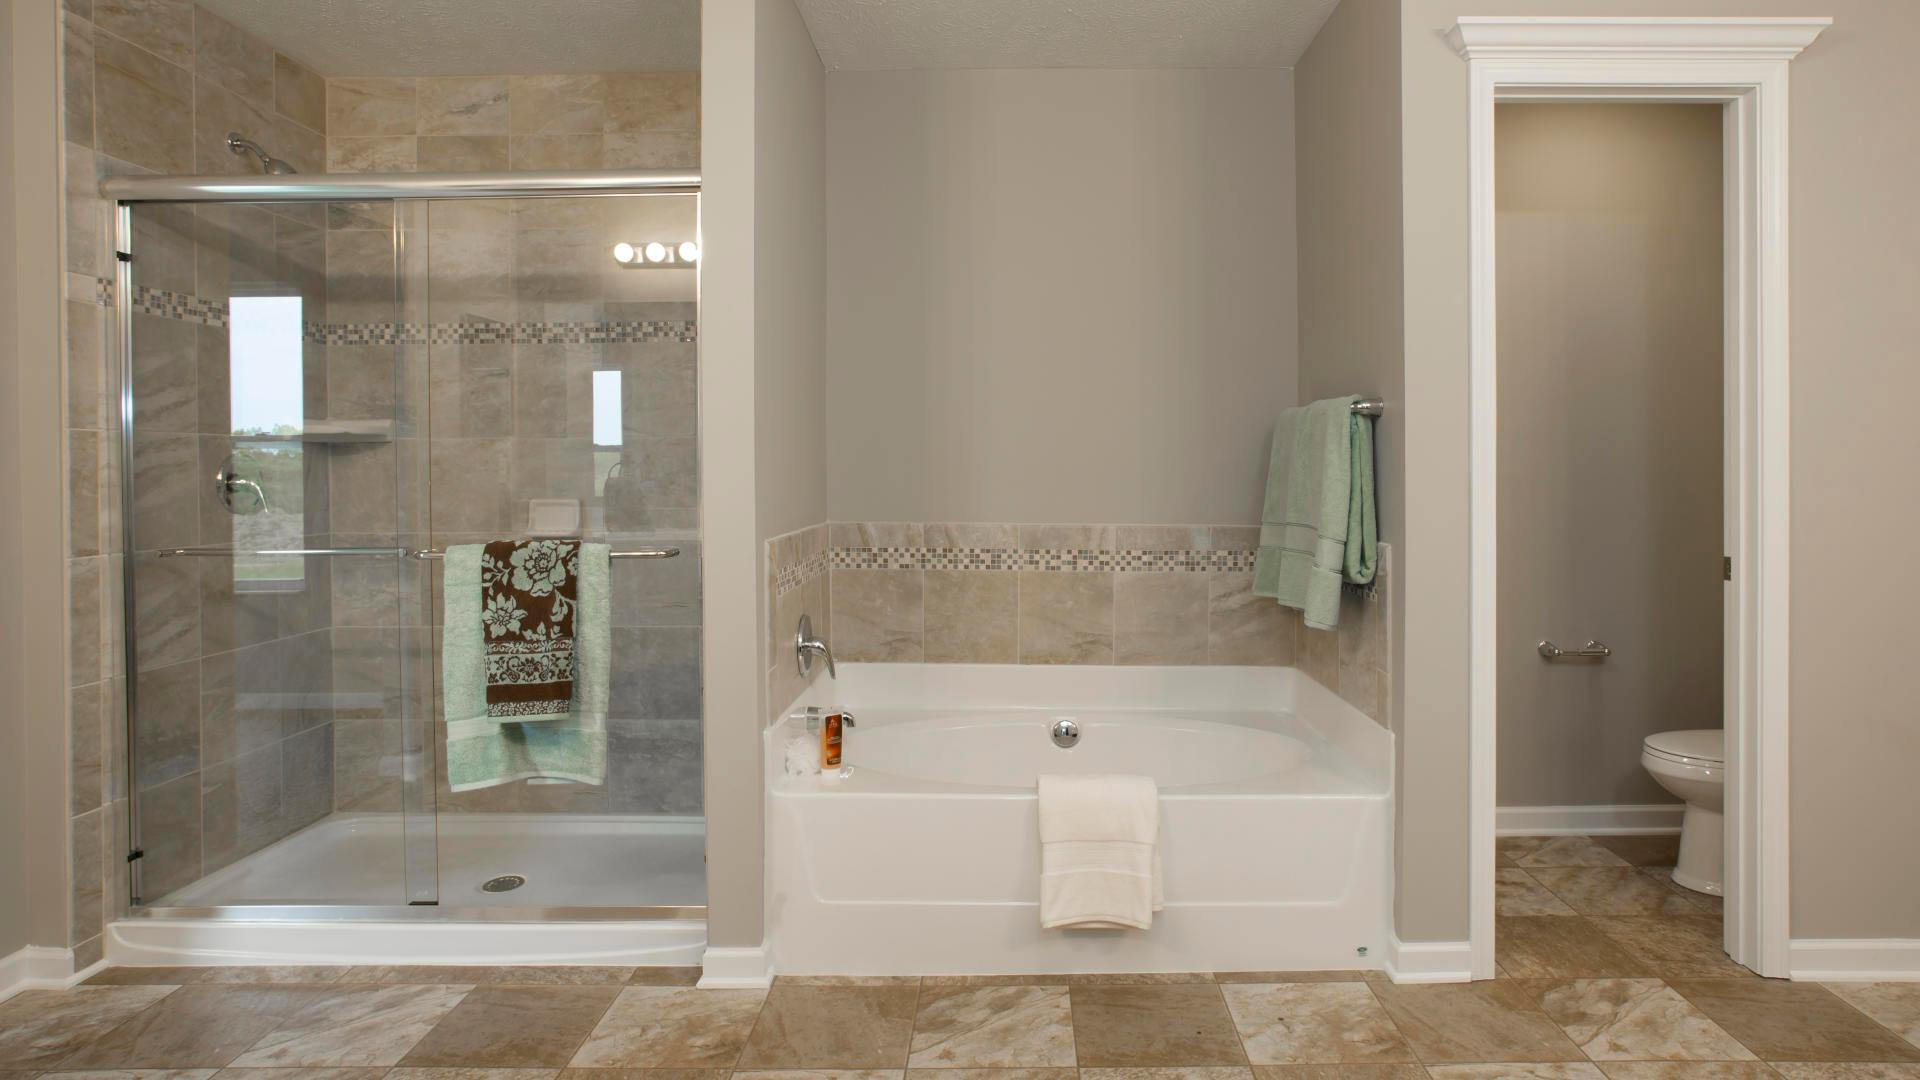 Bathroom featured in the Newbury By Maronda Homes in Pittsburgh, PA